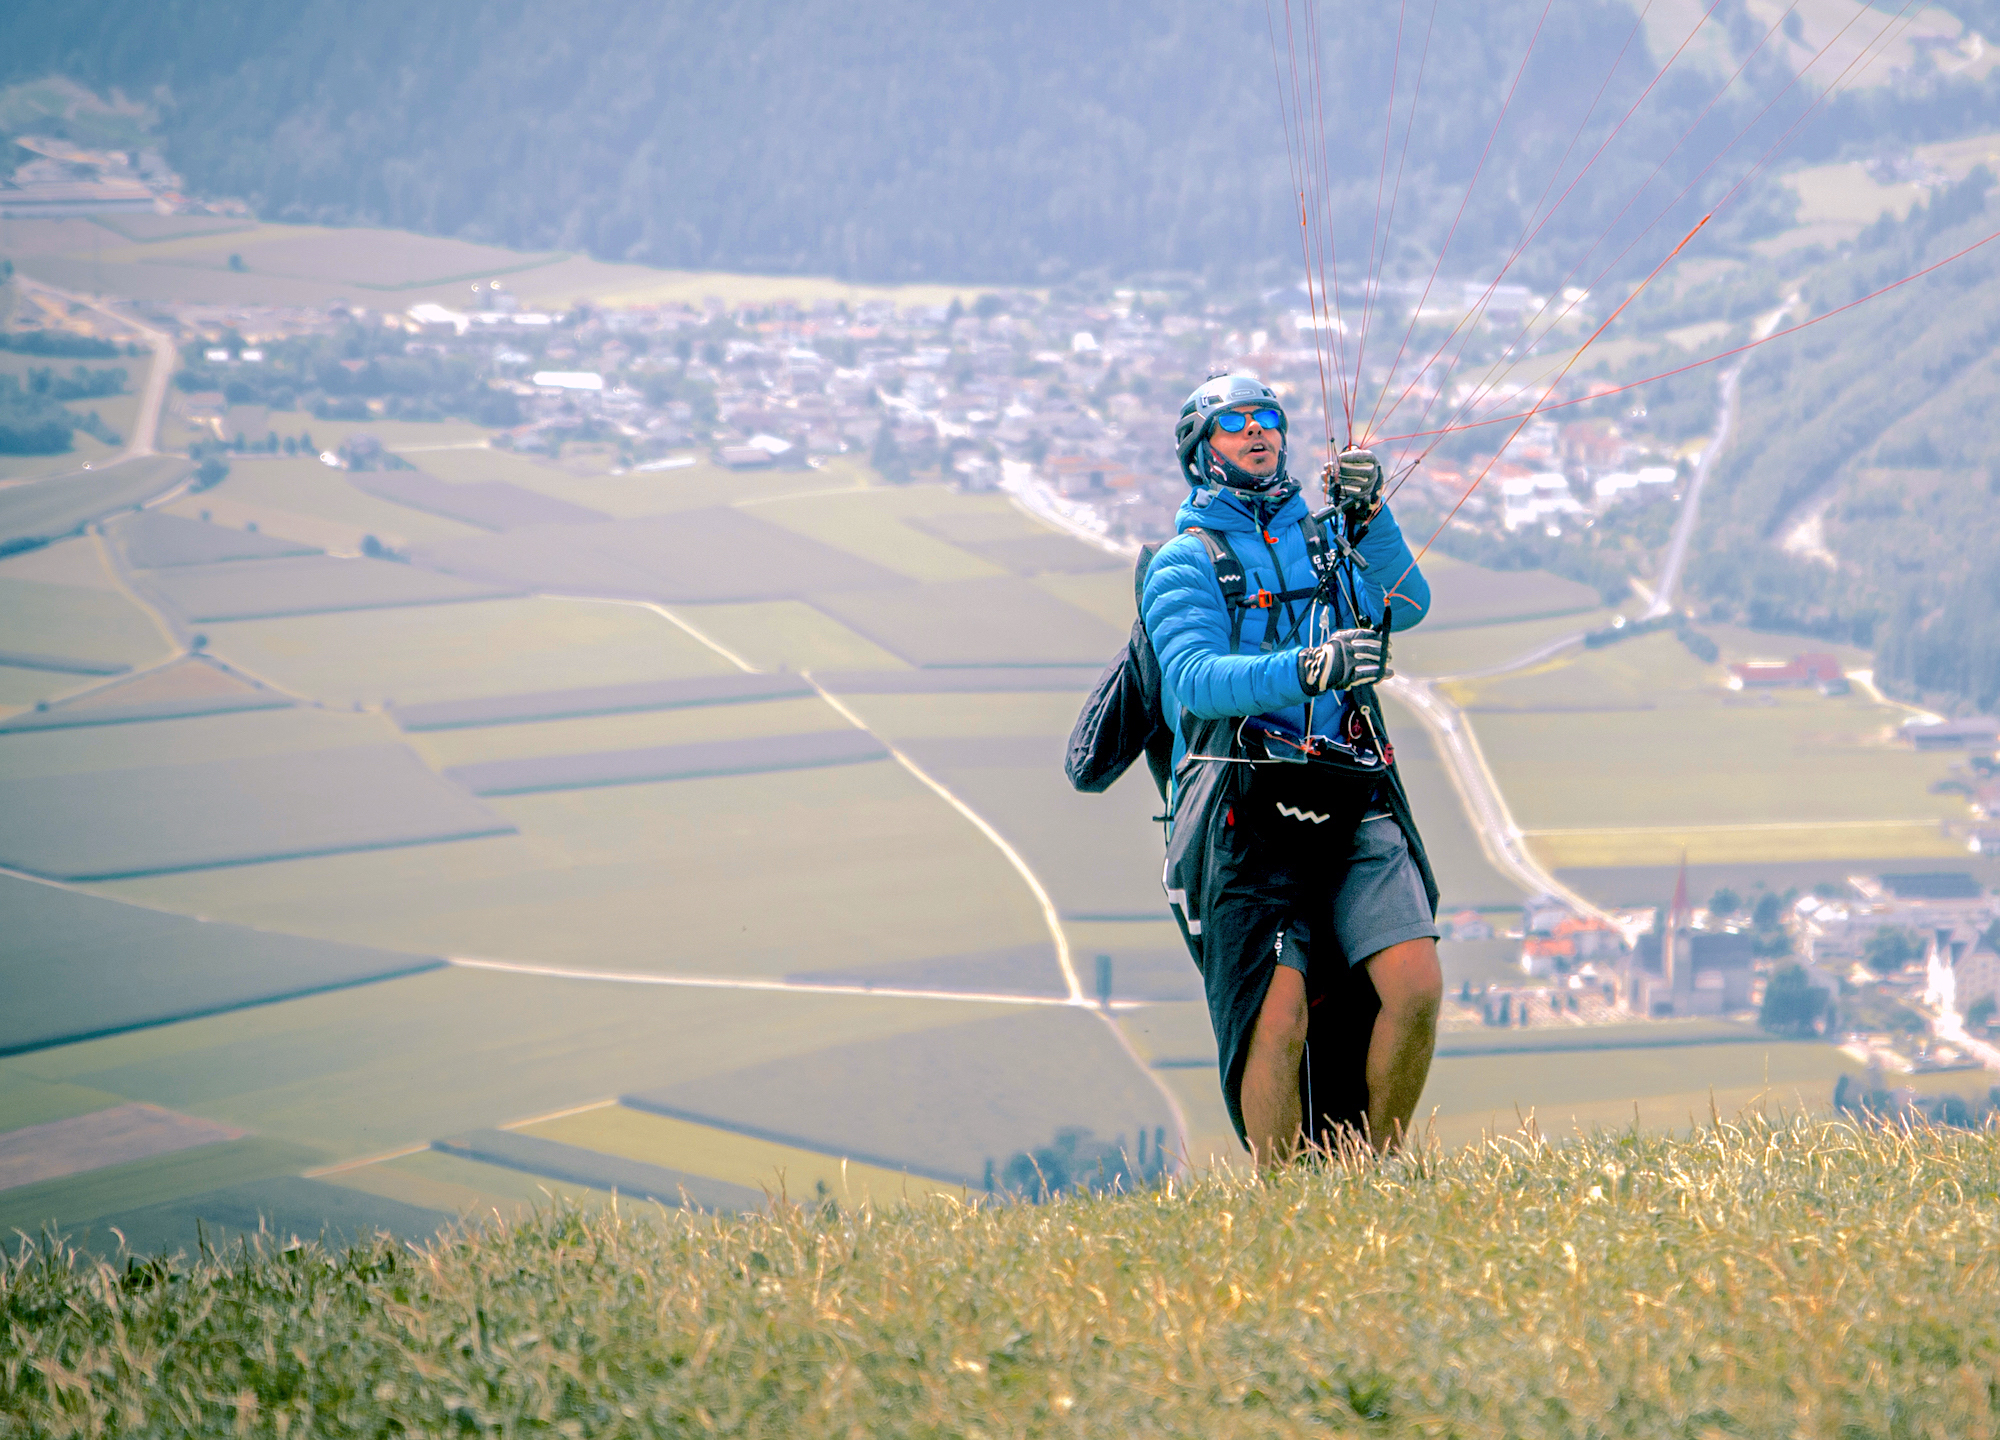 Mit dem XENON beim Muh-Race –mein erstes Hike & Fly-Rennen / With the XENON at the Muh Race – my first hike & fly comp